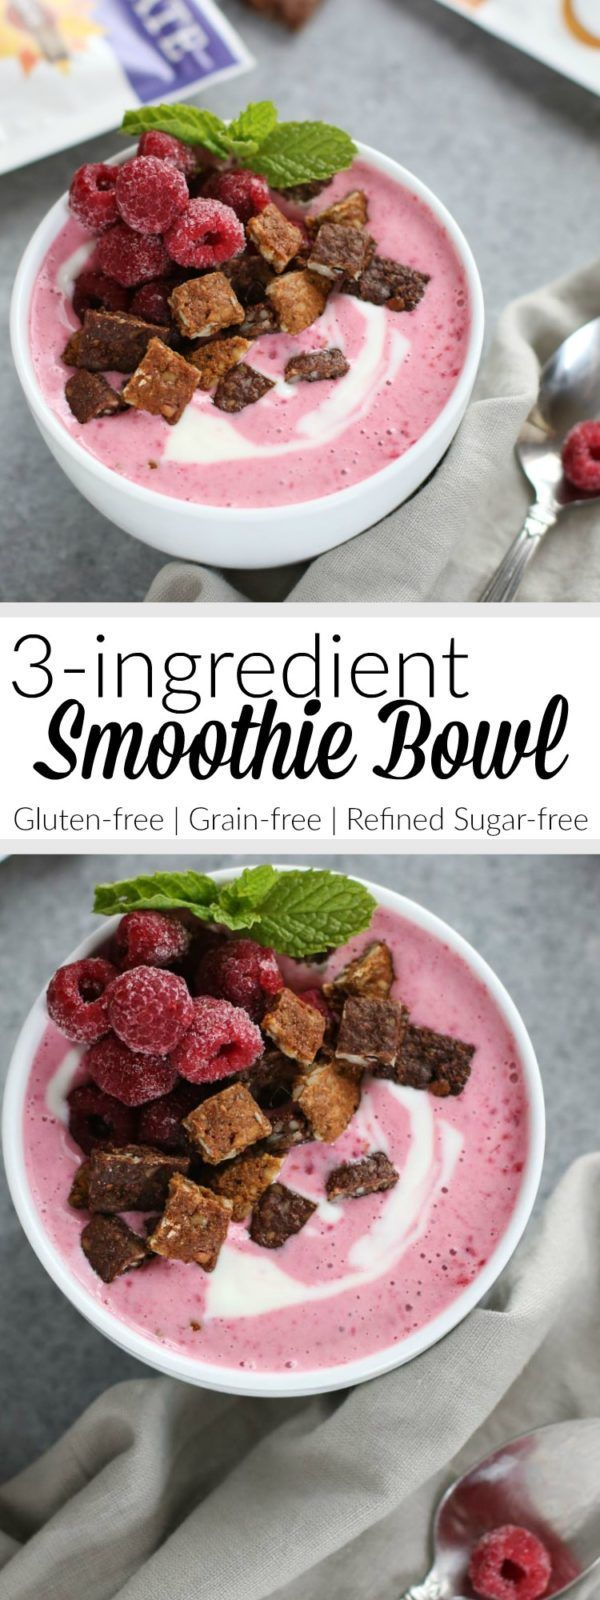 Snacks with benefits: Our 3-Ingredient Smoothie Bowl is the perfect little 5-minute sweet treat!   Gluten-free   Grain-free   Vegetarian   therealfoodrds.com